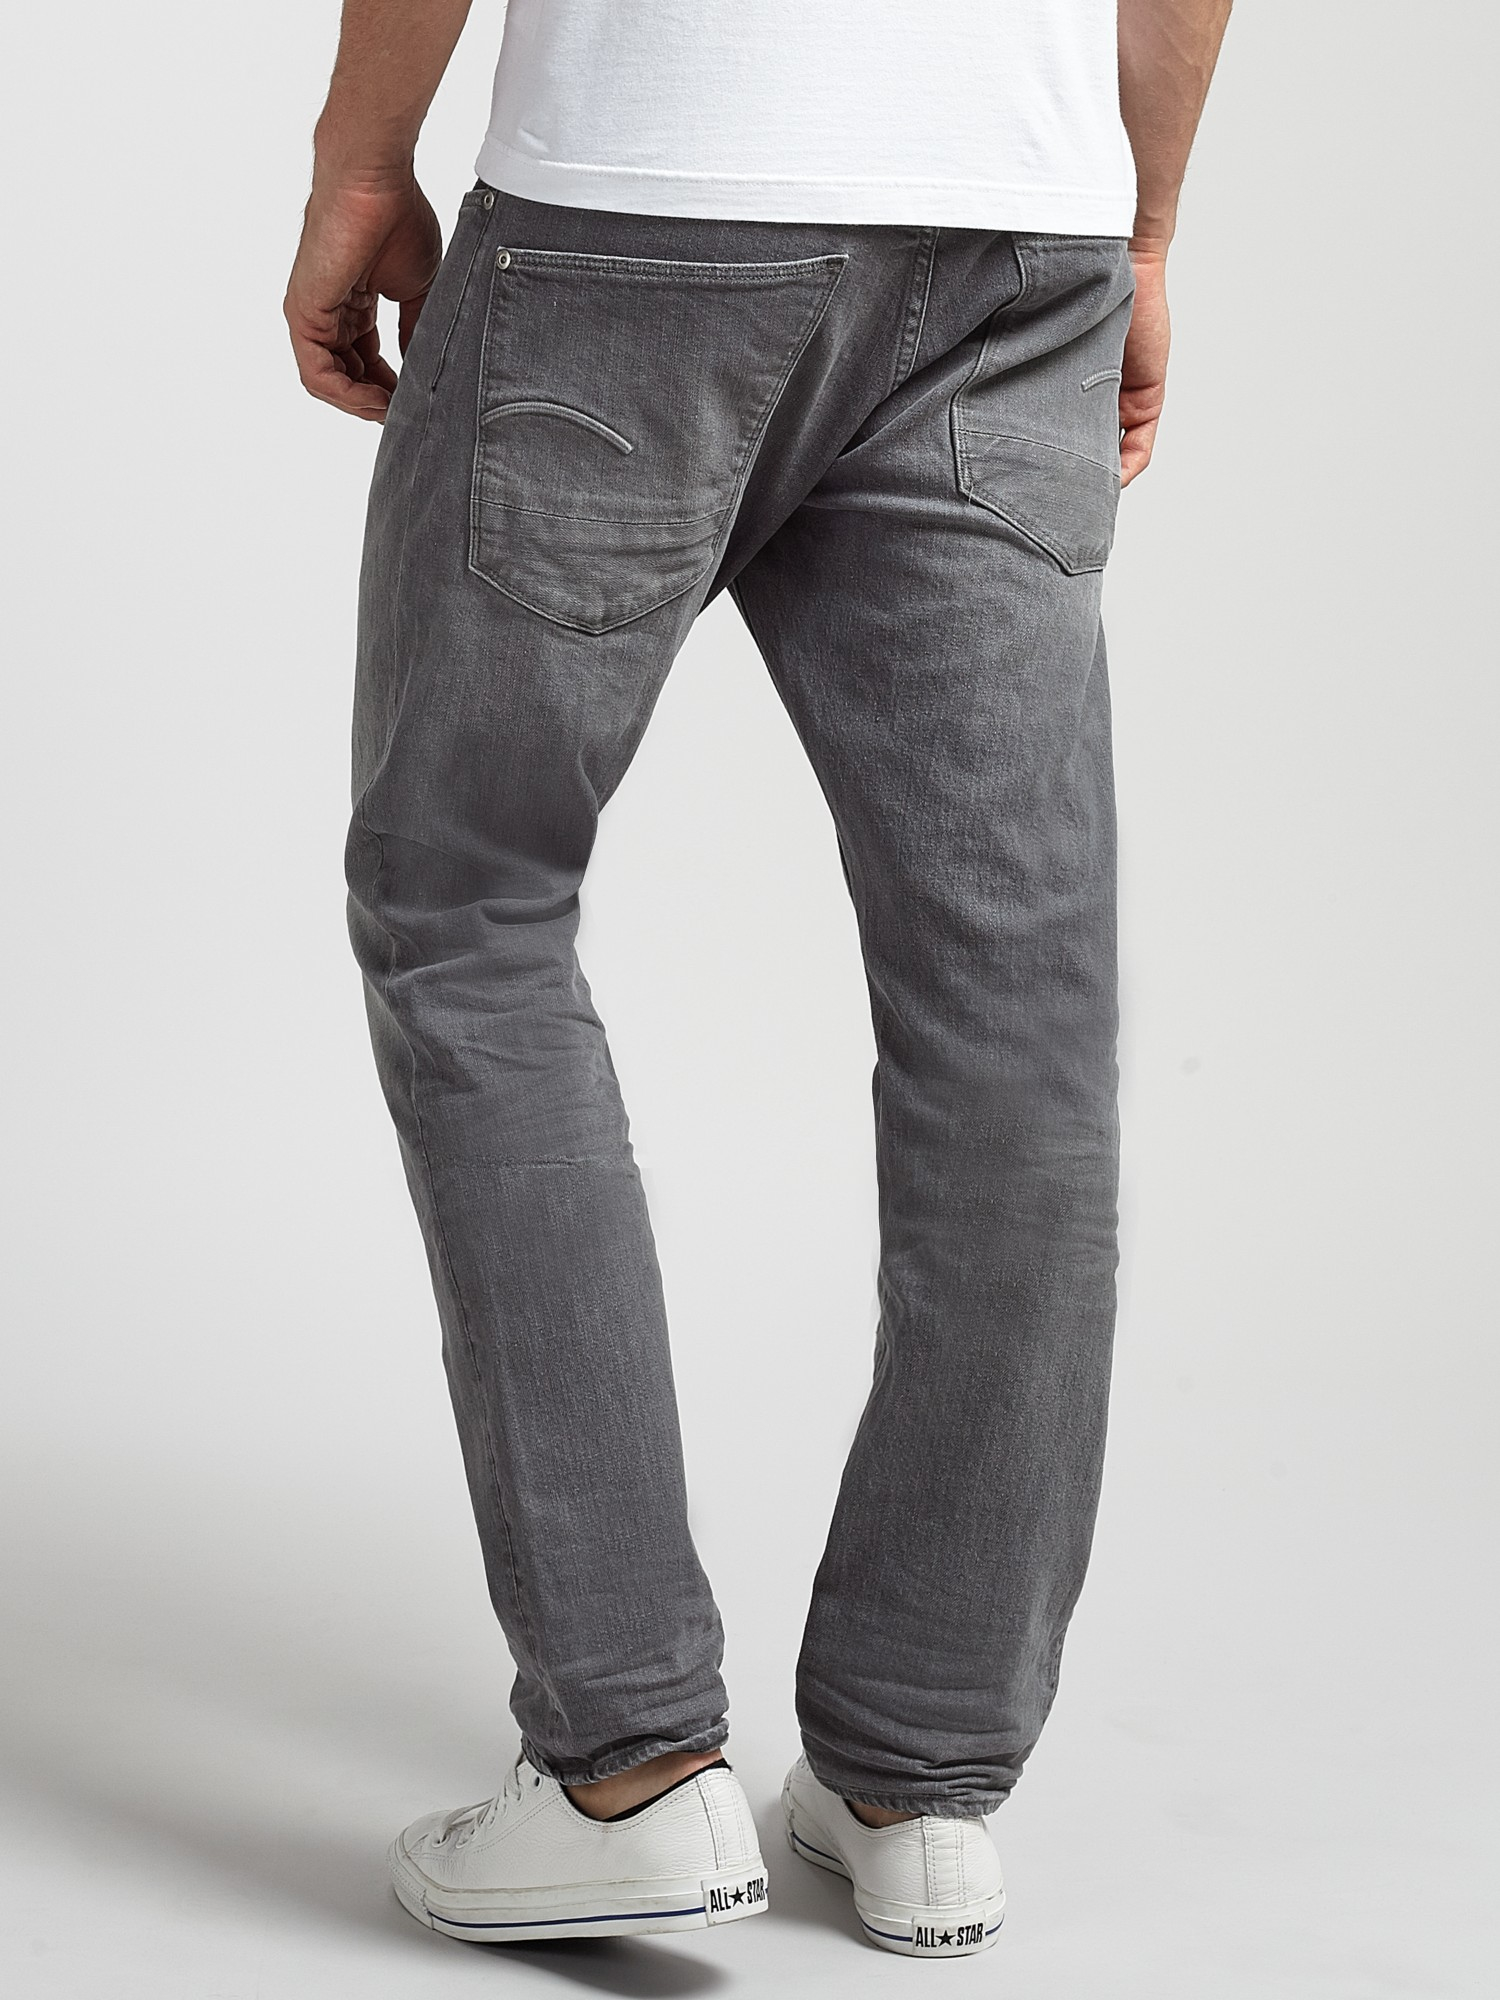 Raw Lyst Jeans Men G Tapered Star For Stean Gray In qxS57ISwz